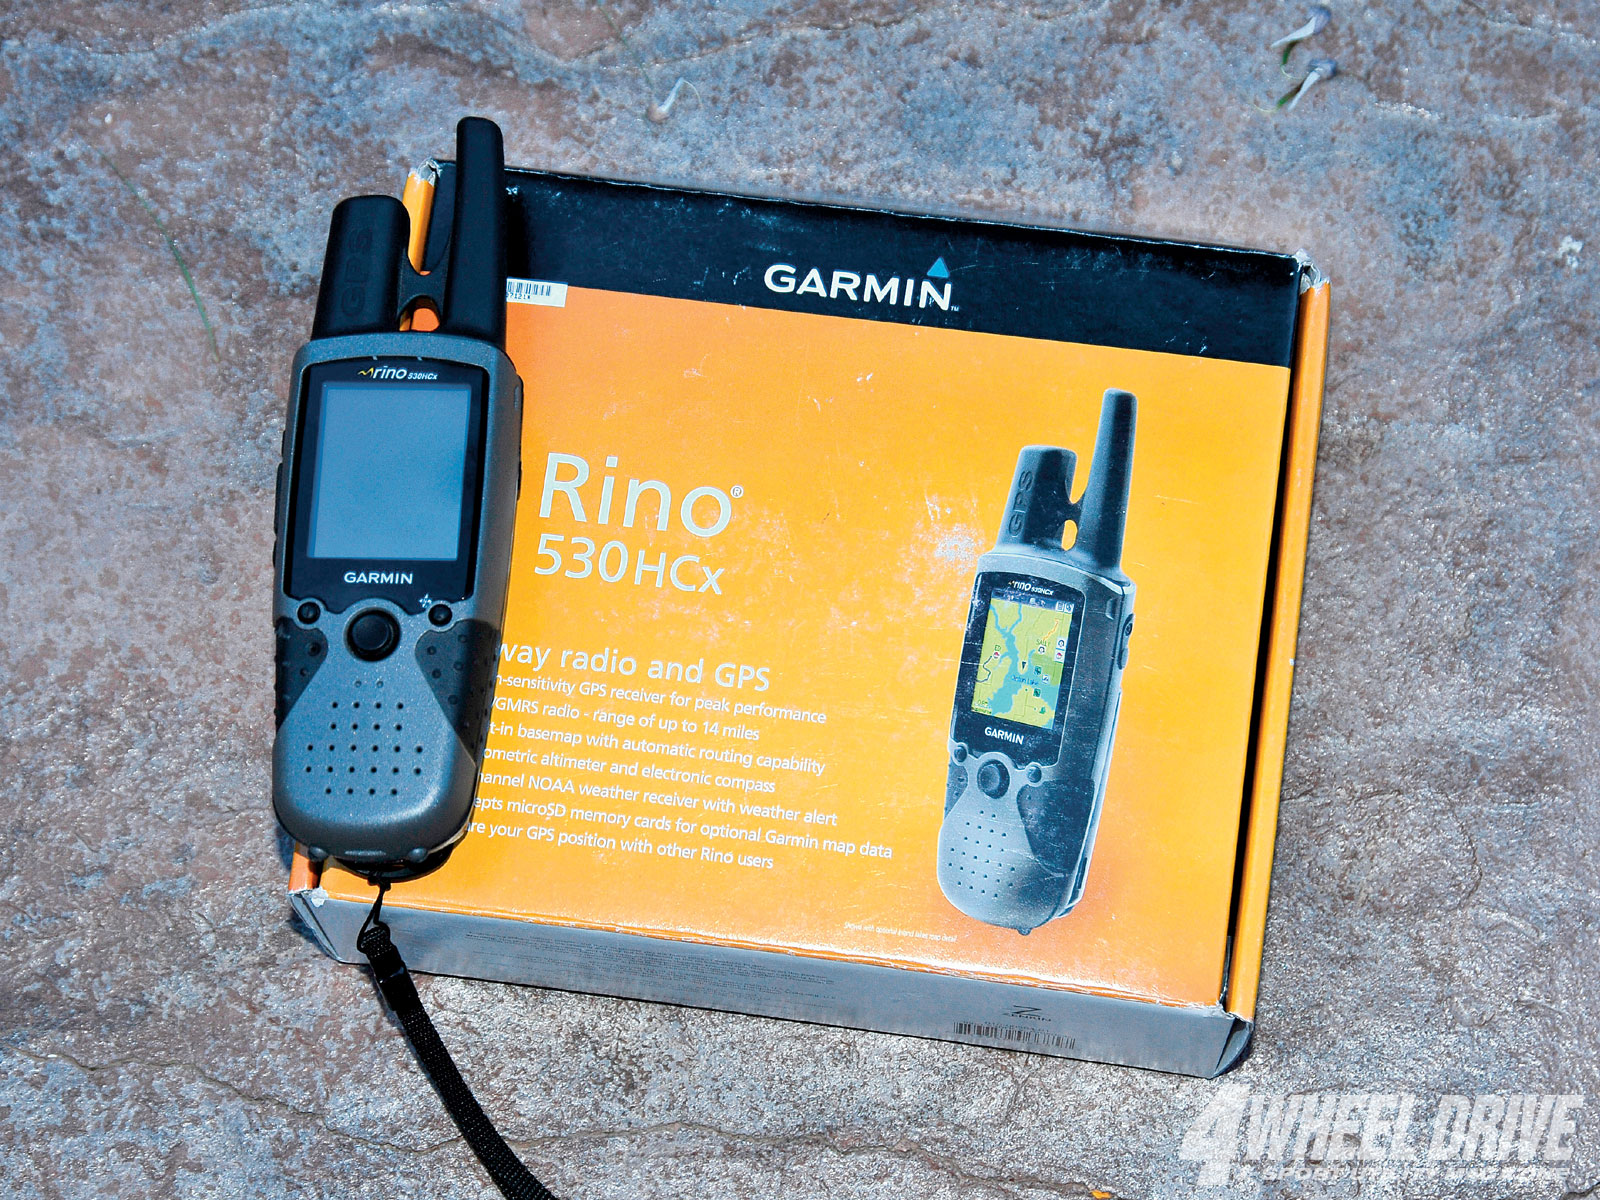 1010 4wd 01+garmin rino 530HCx+two way radio and GPS